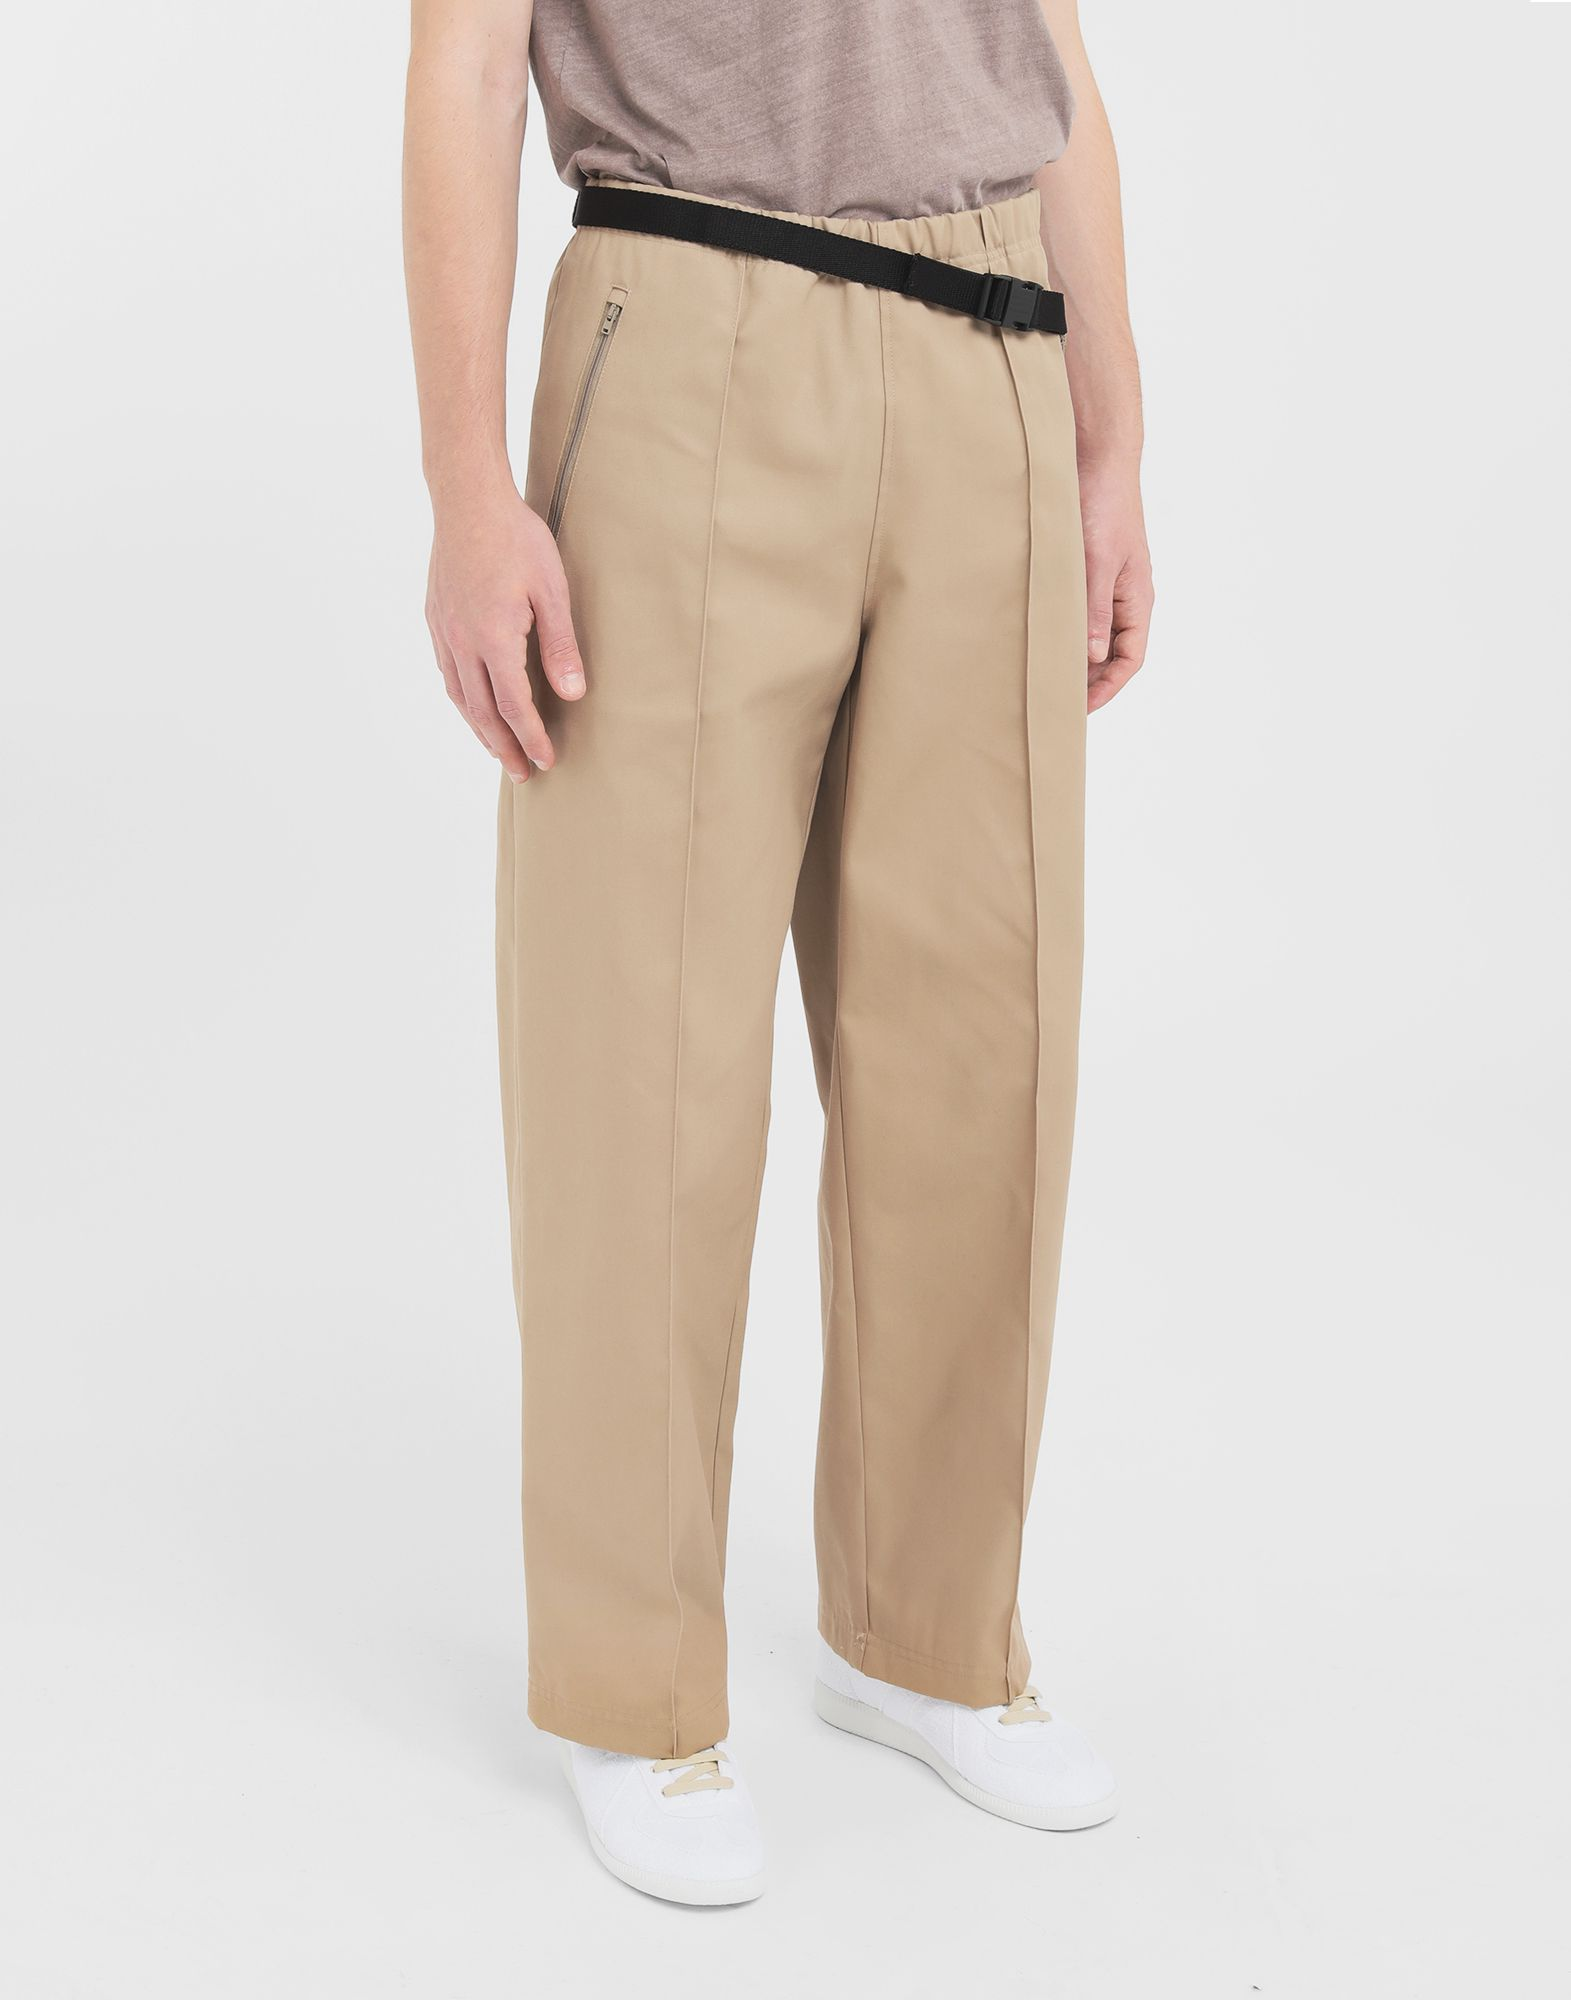 MAISON MARGIELA Trousers with bumbag Trousers Man r